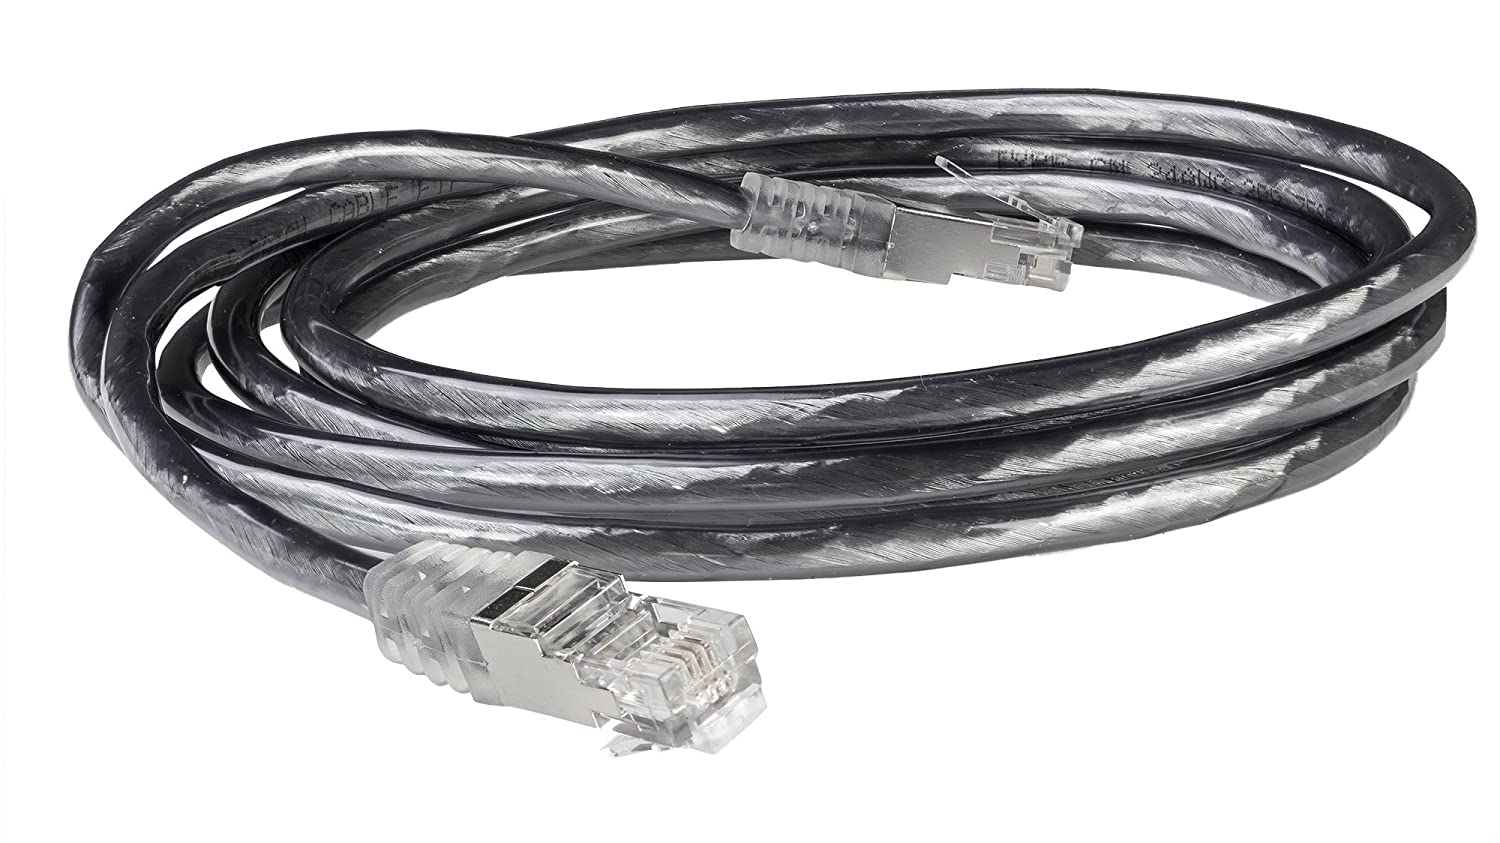 C2g Cables To Go 28724 Rj11 High Speed Internet Modem Connector Wiring Diagram Centurylink Cable 50 Feet Electronics